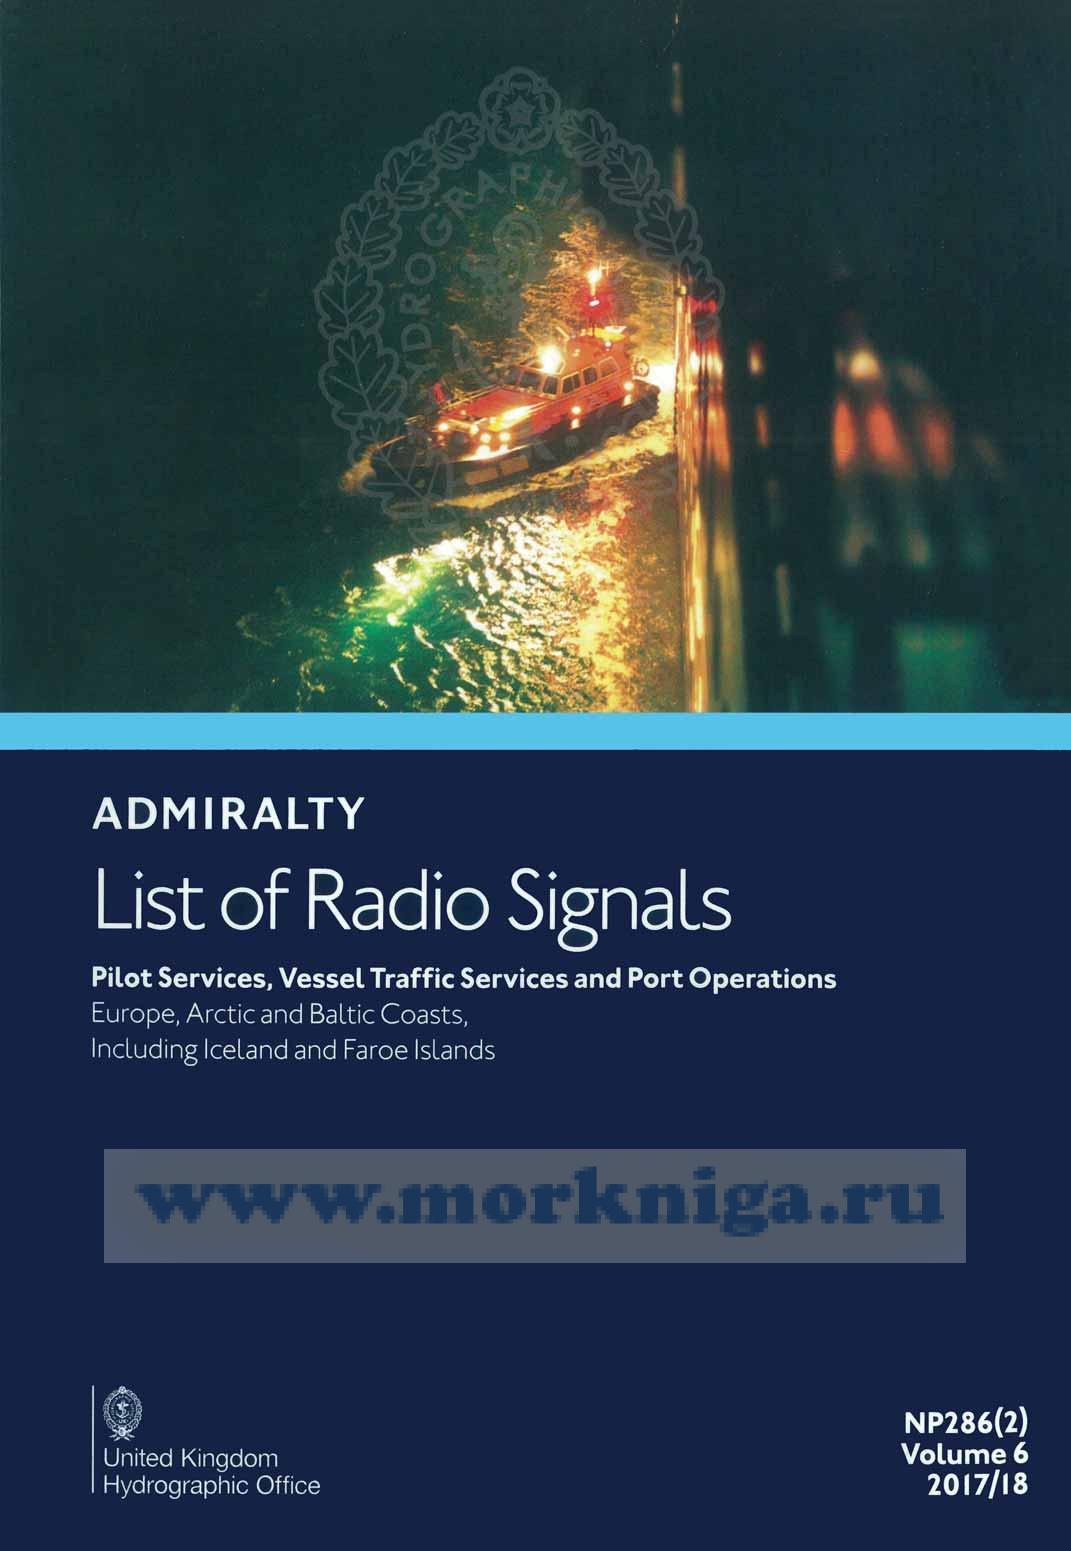 Admiralty list of radio signals. Vol 6. NP286(2) (ALRS). Pilot servises, vessel traffio, servises and port operation. Europe, Arctic and Baltic coasts, including Iceland and Faeroe Islands 2017/2018